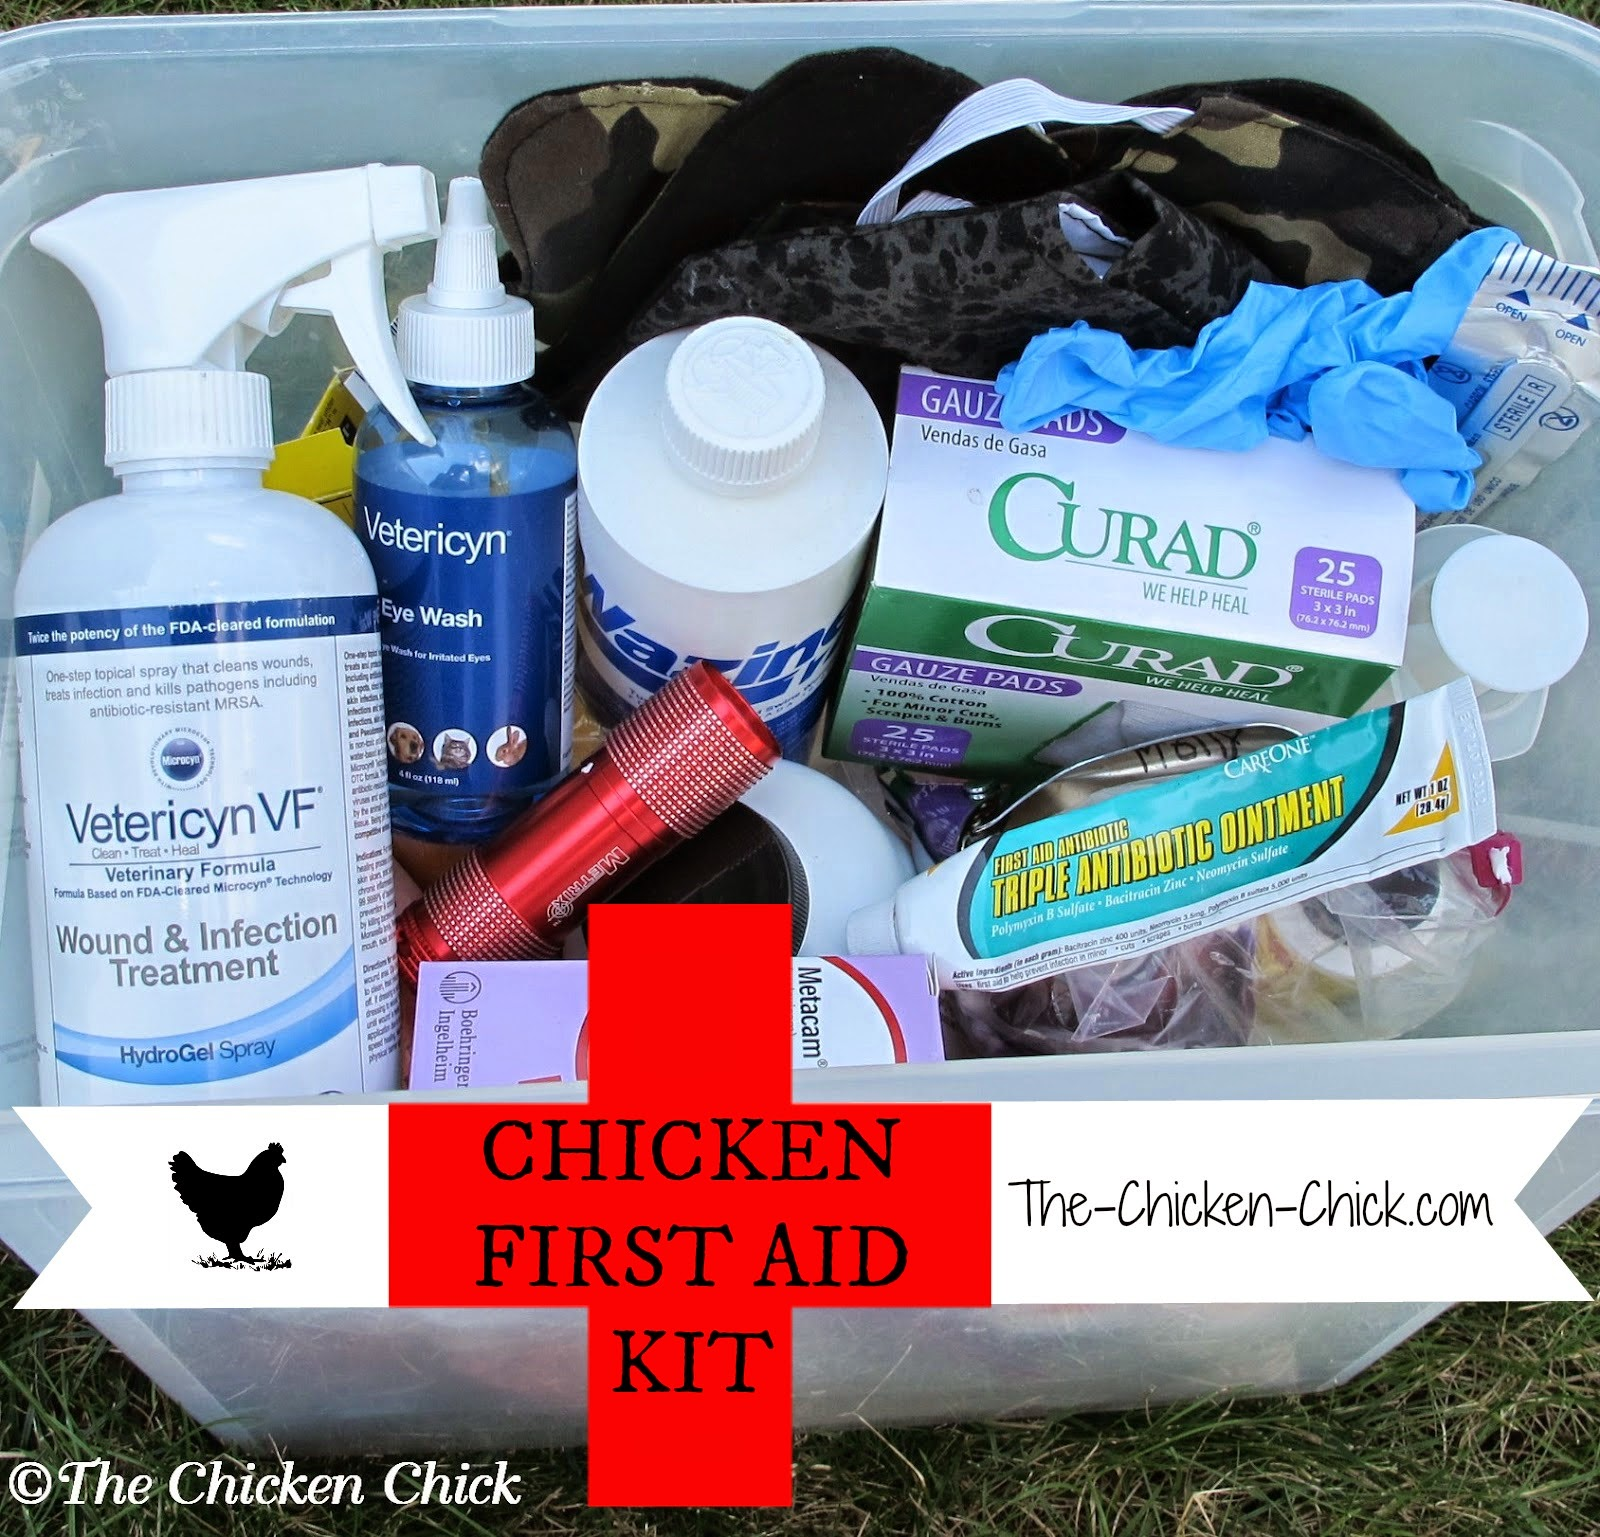 http://www.the-chicken-chick.com/2012/01/chicken-first-aid-kit-sick-bay-be.html